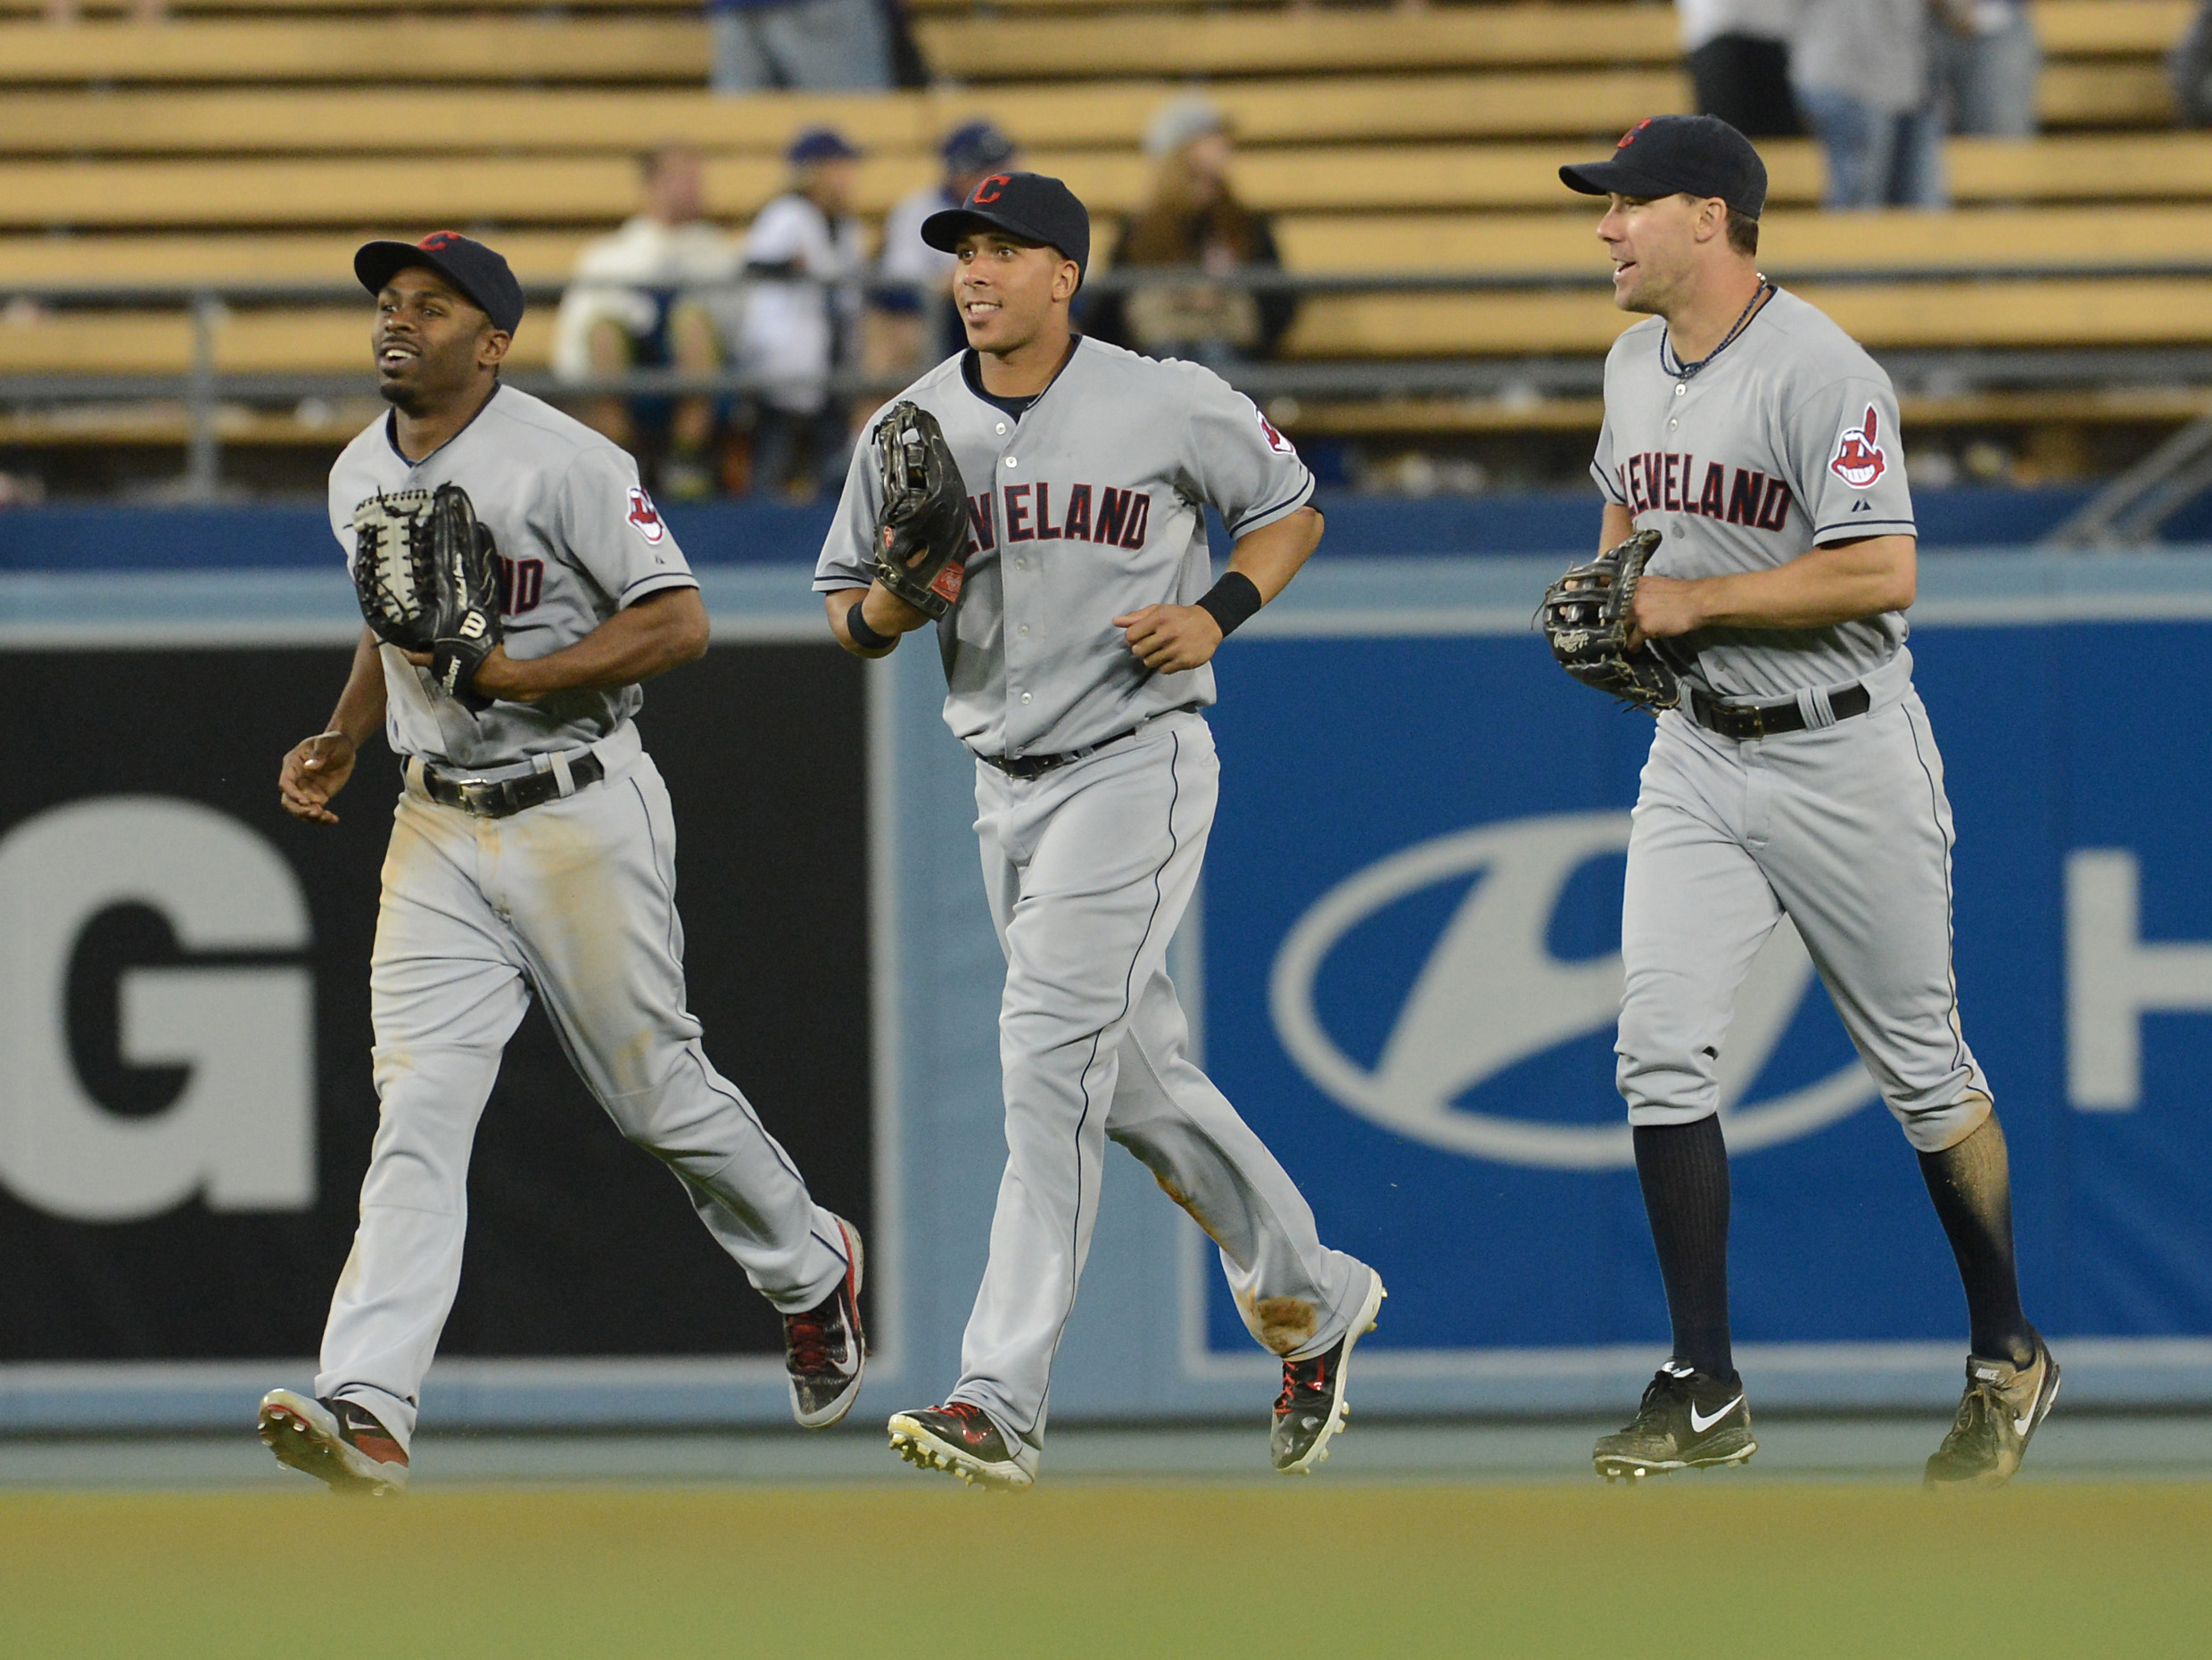 The main Tribe outfield in 2014